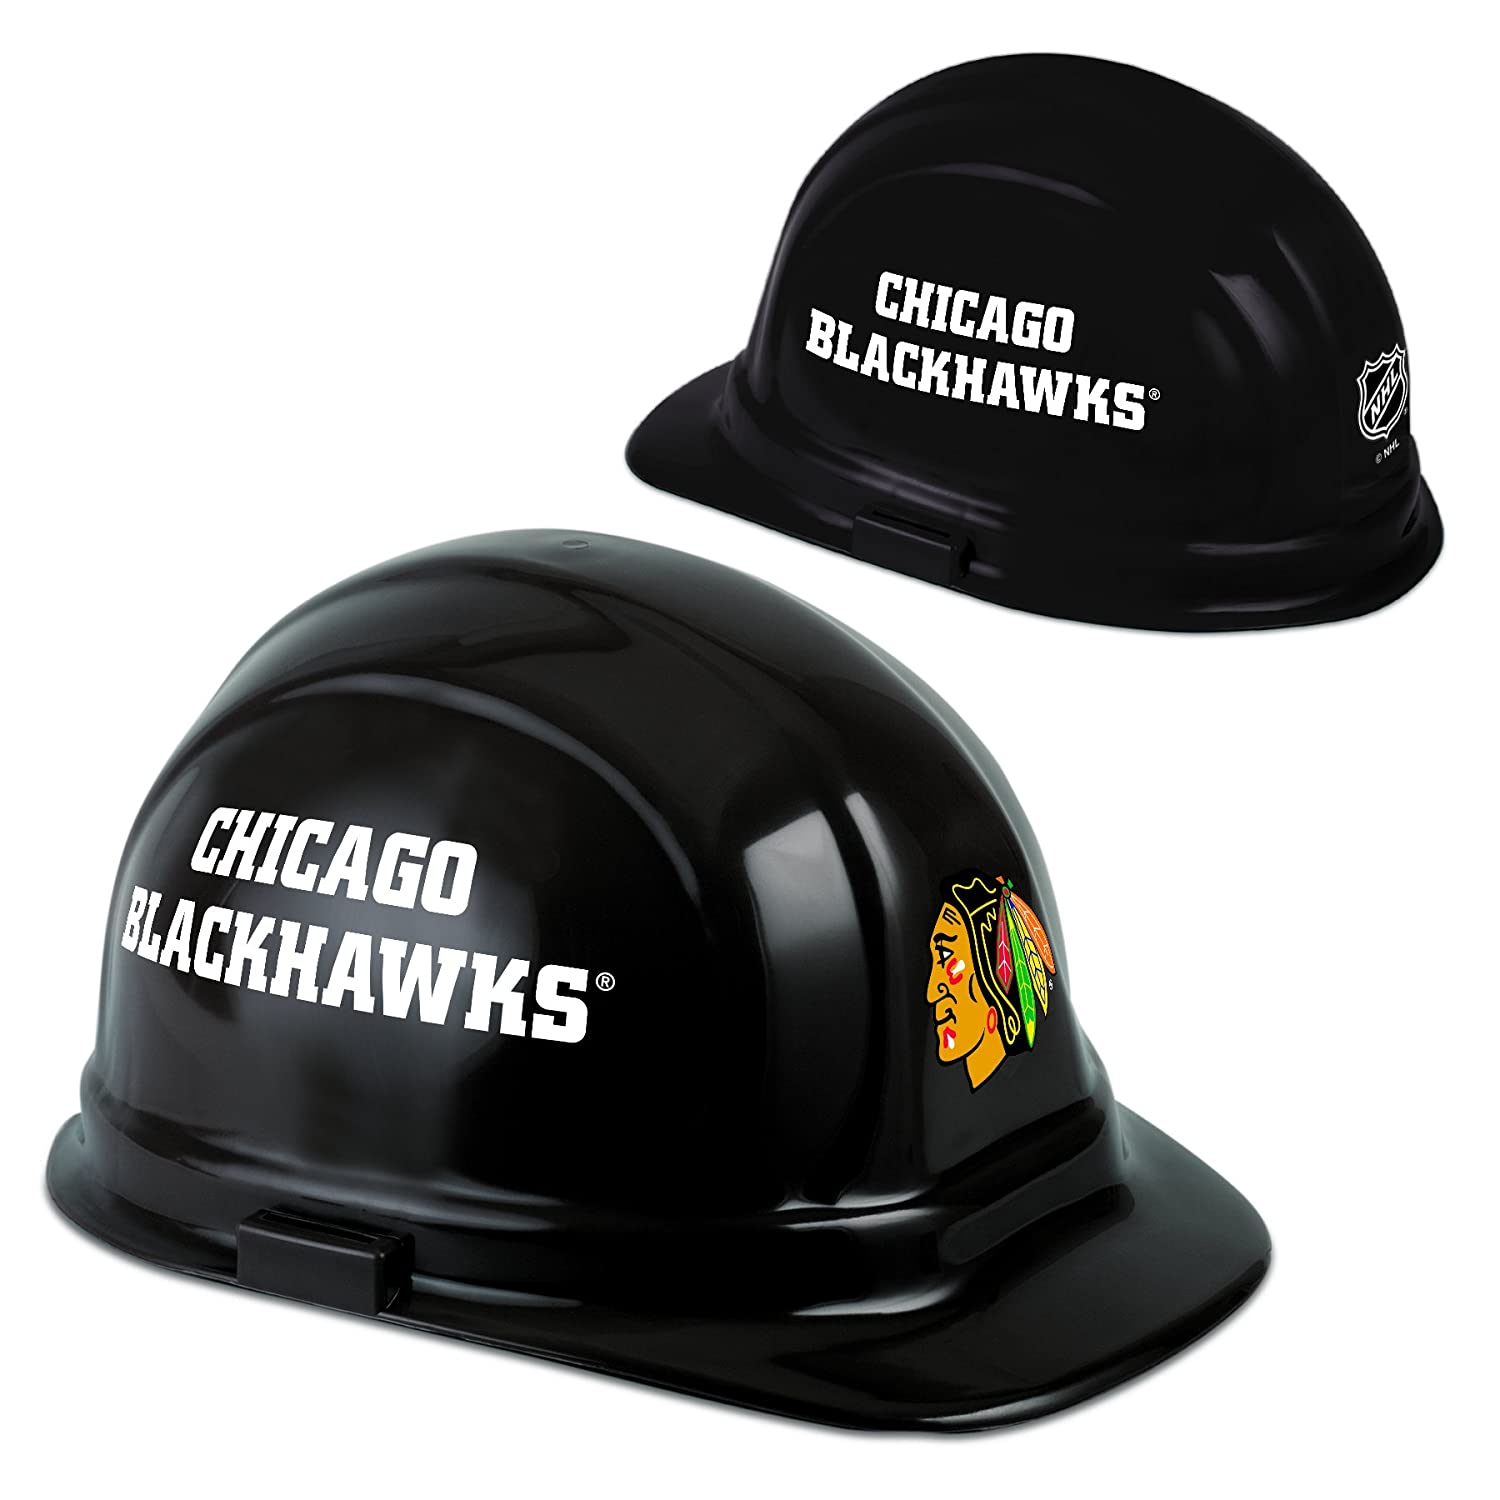 Chicago Blackhawks Hats Nhl Hard Hat Team Chicago